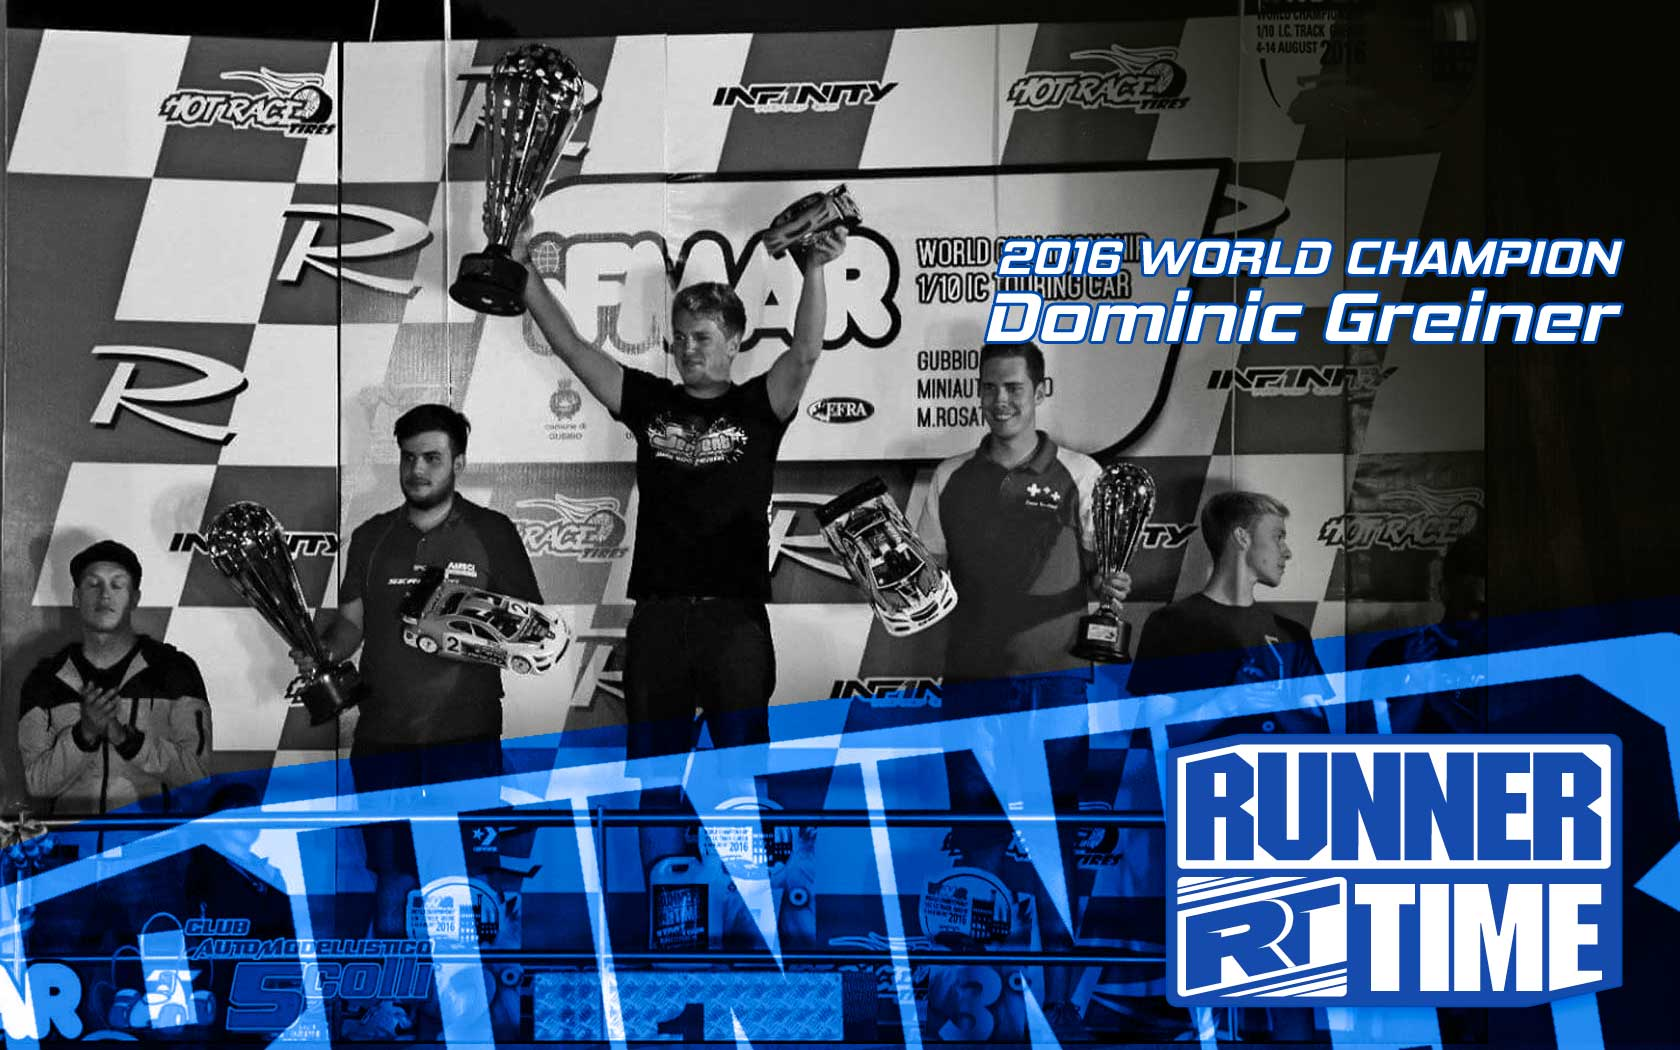 Dominic_Greiner_World_Champion_2016